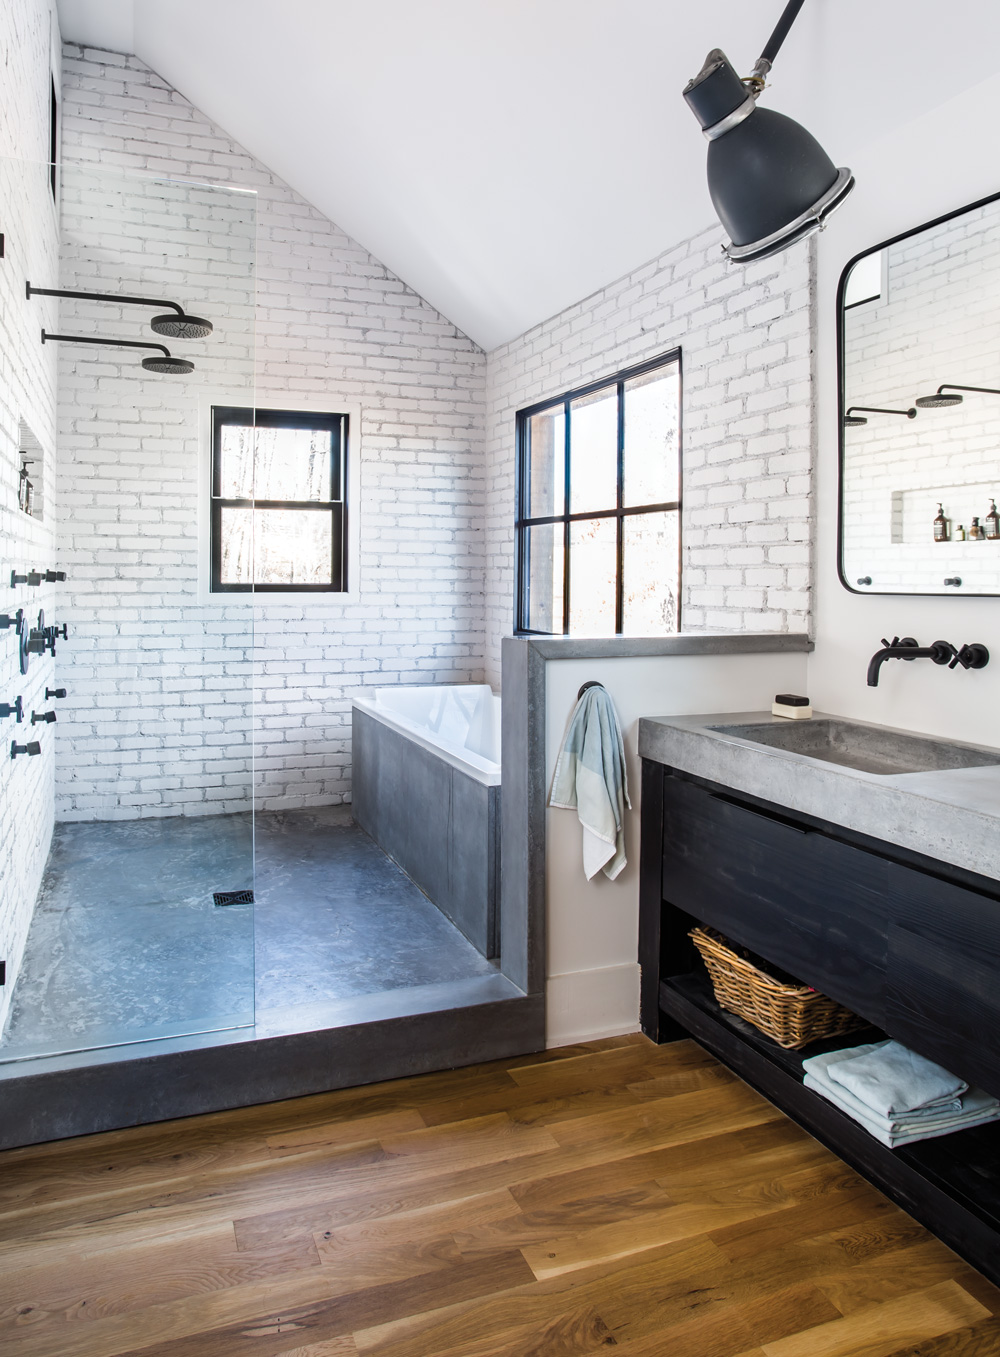 Room Envy: At Serenbe, A Master Bath With A Modern